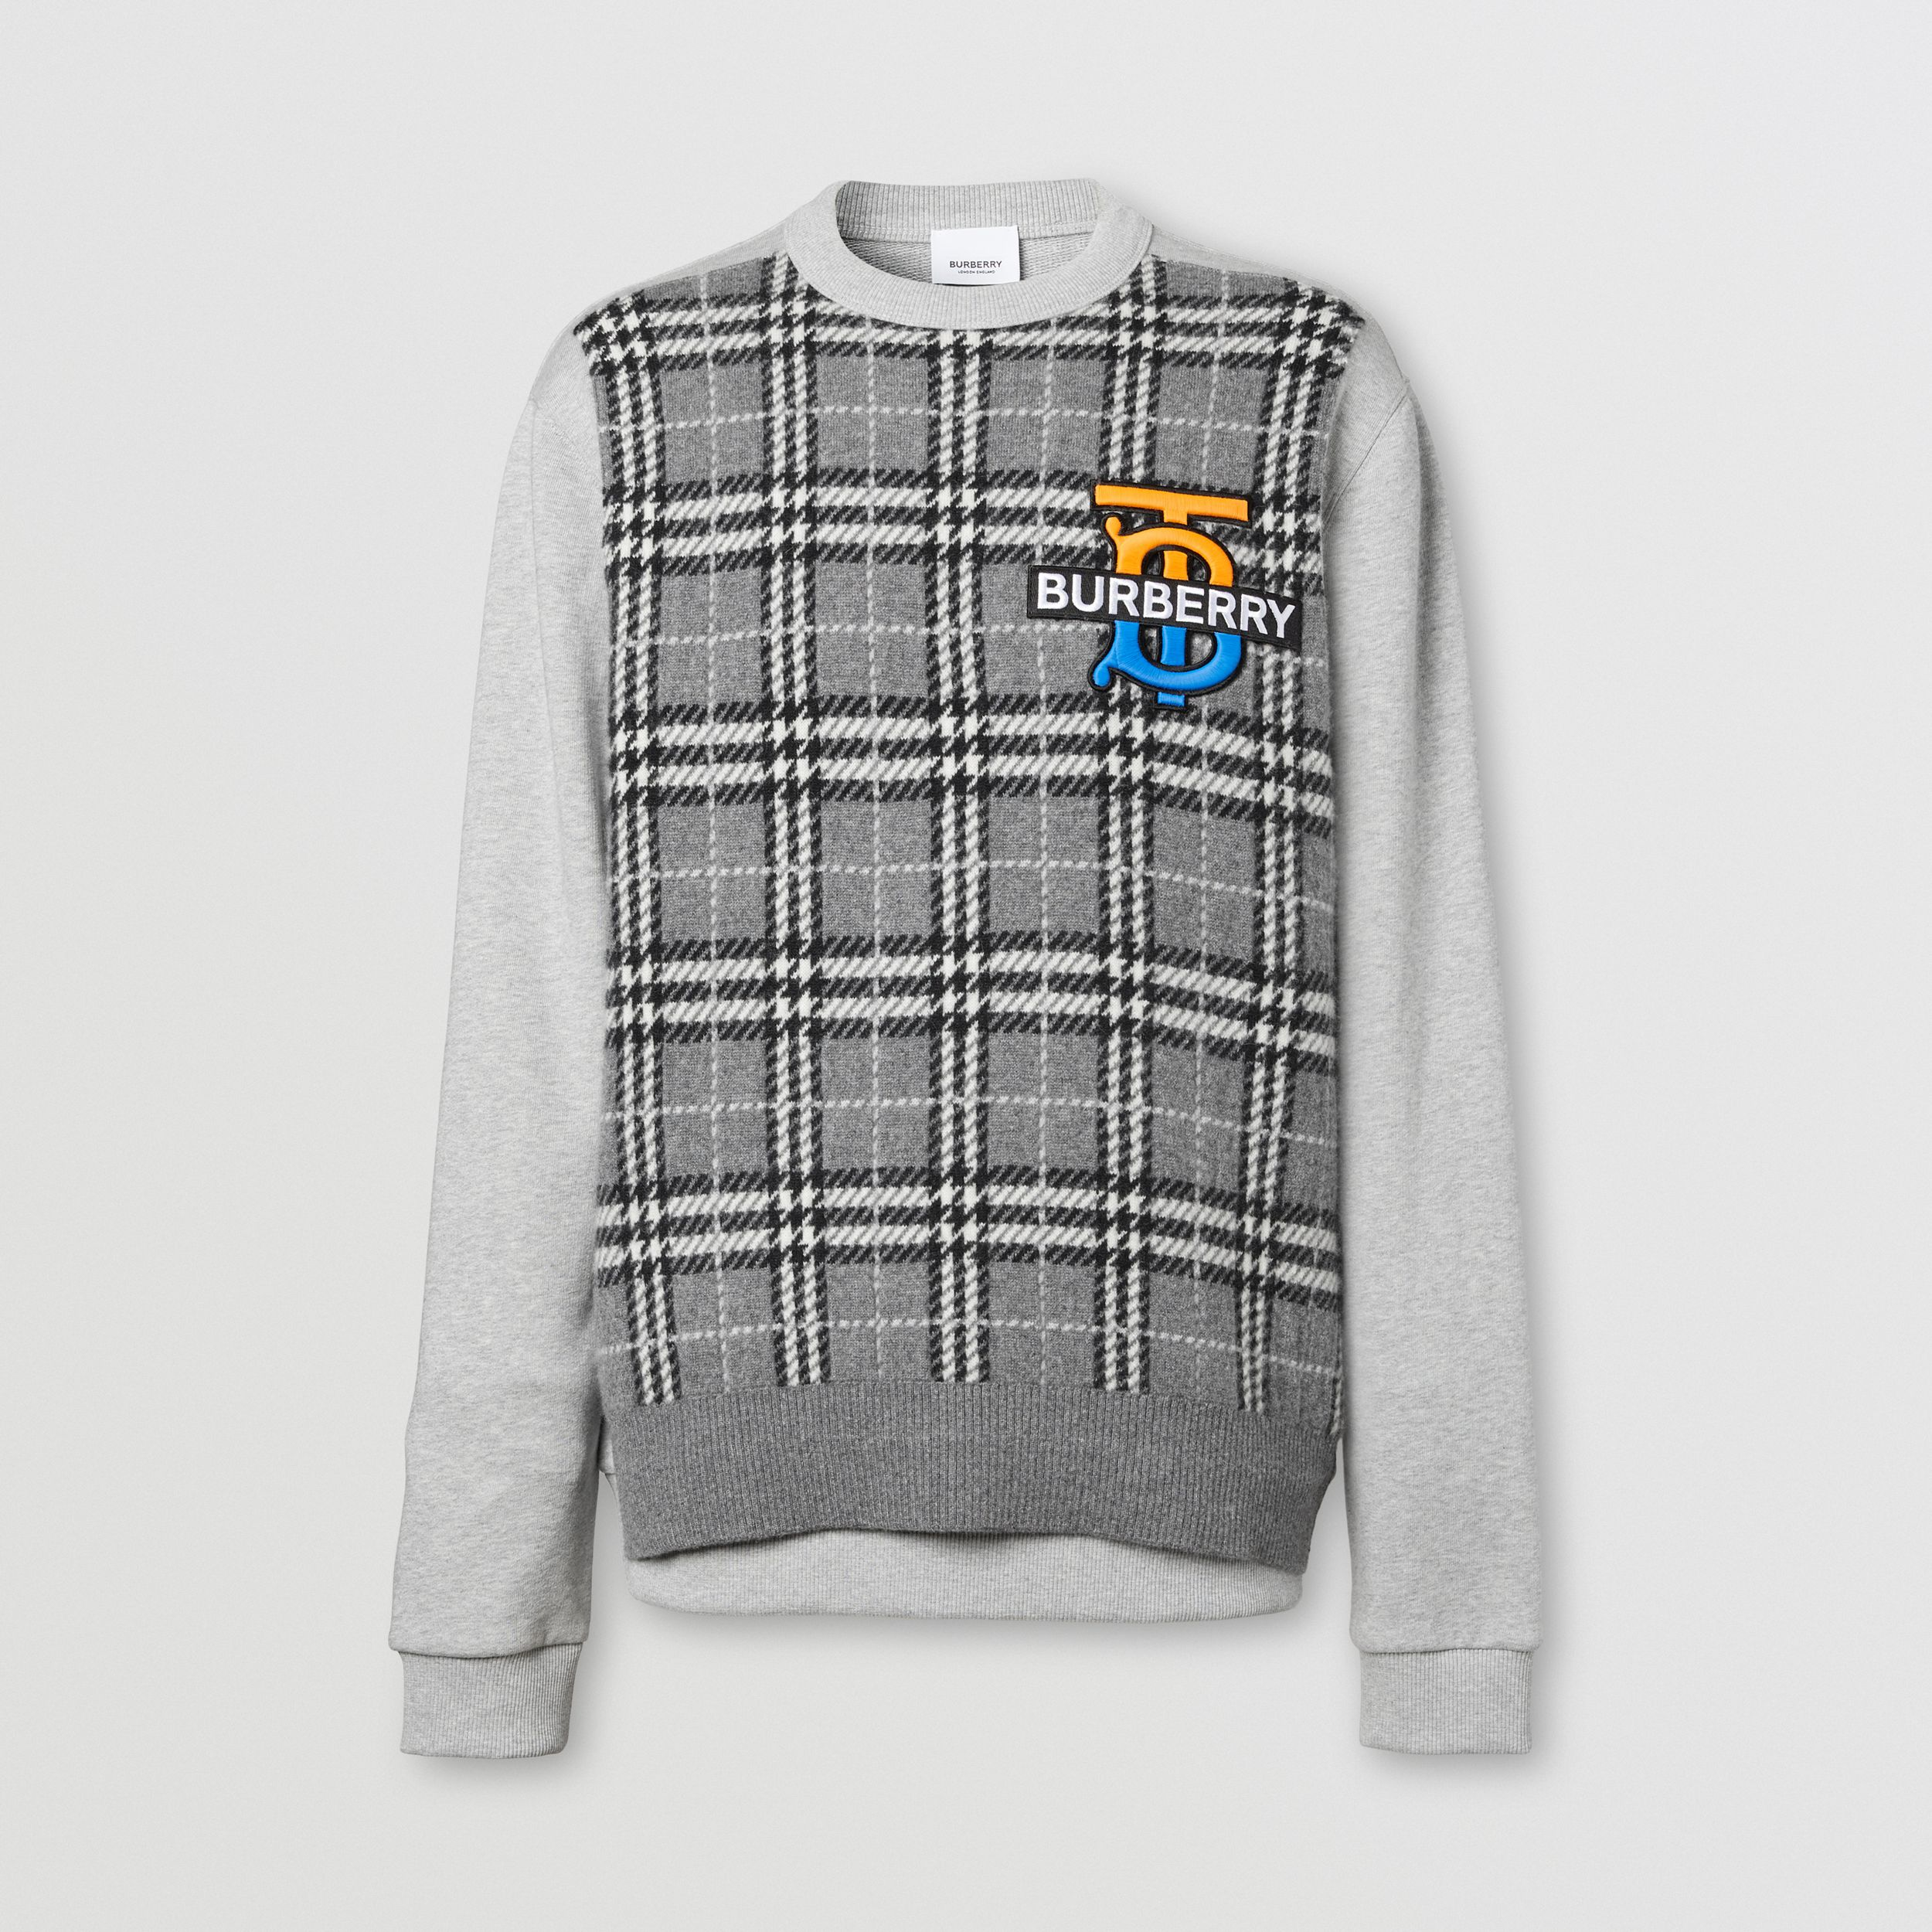 Monogram Motif Check Cashmere Panel Sweatshirt in Pale Grey Melange - Men | Burberry - 4